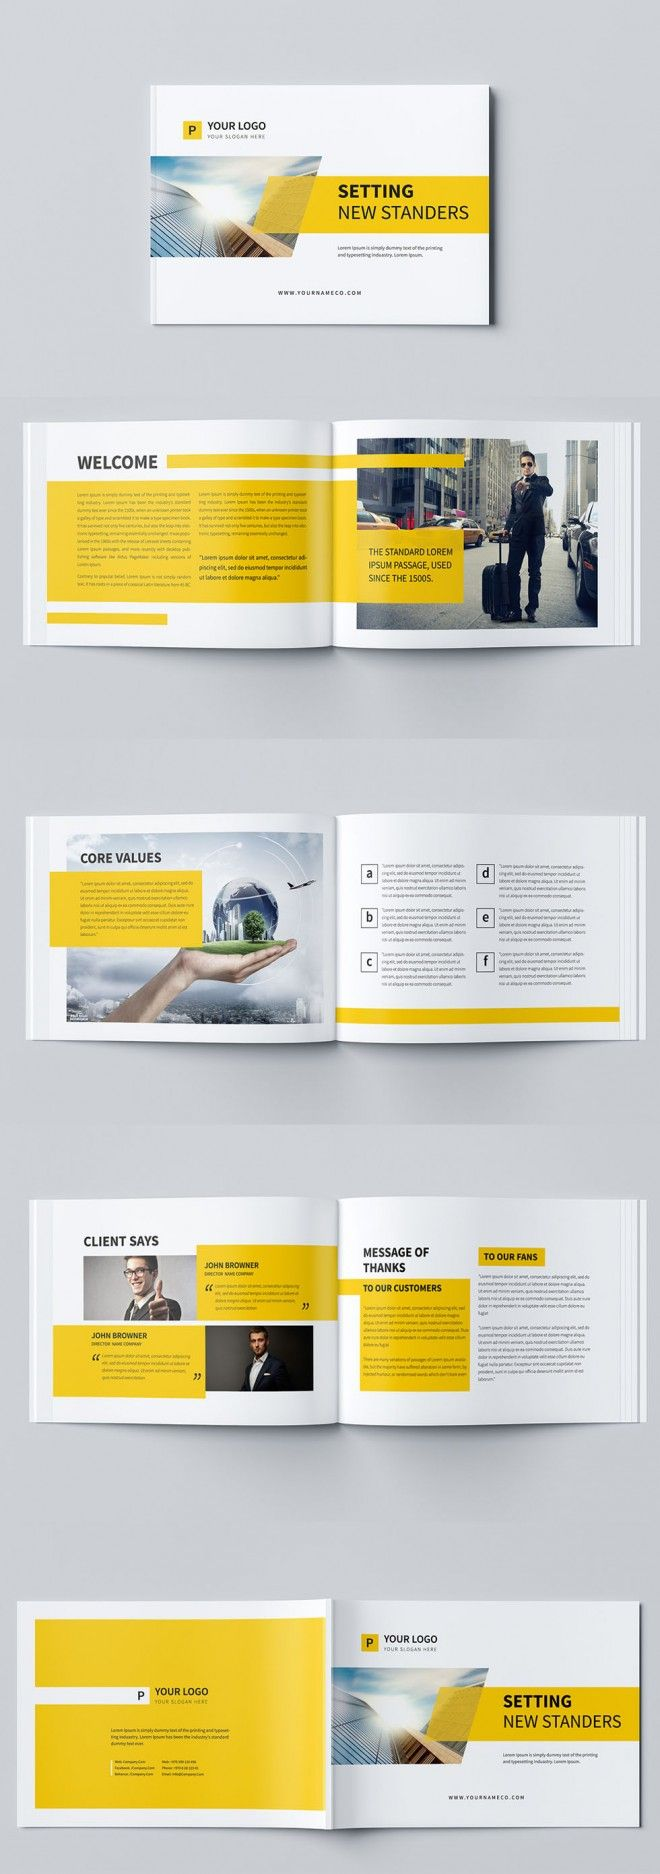 i will design professional brochure brochure design brochure formatbrochure ideasbrochure layoutbooklet - Booklet Design Ideas